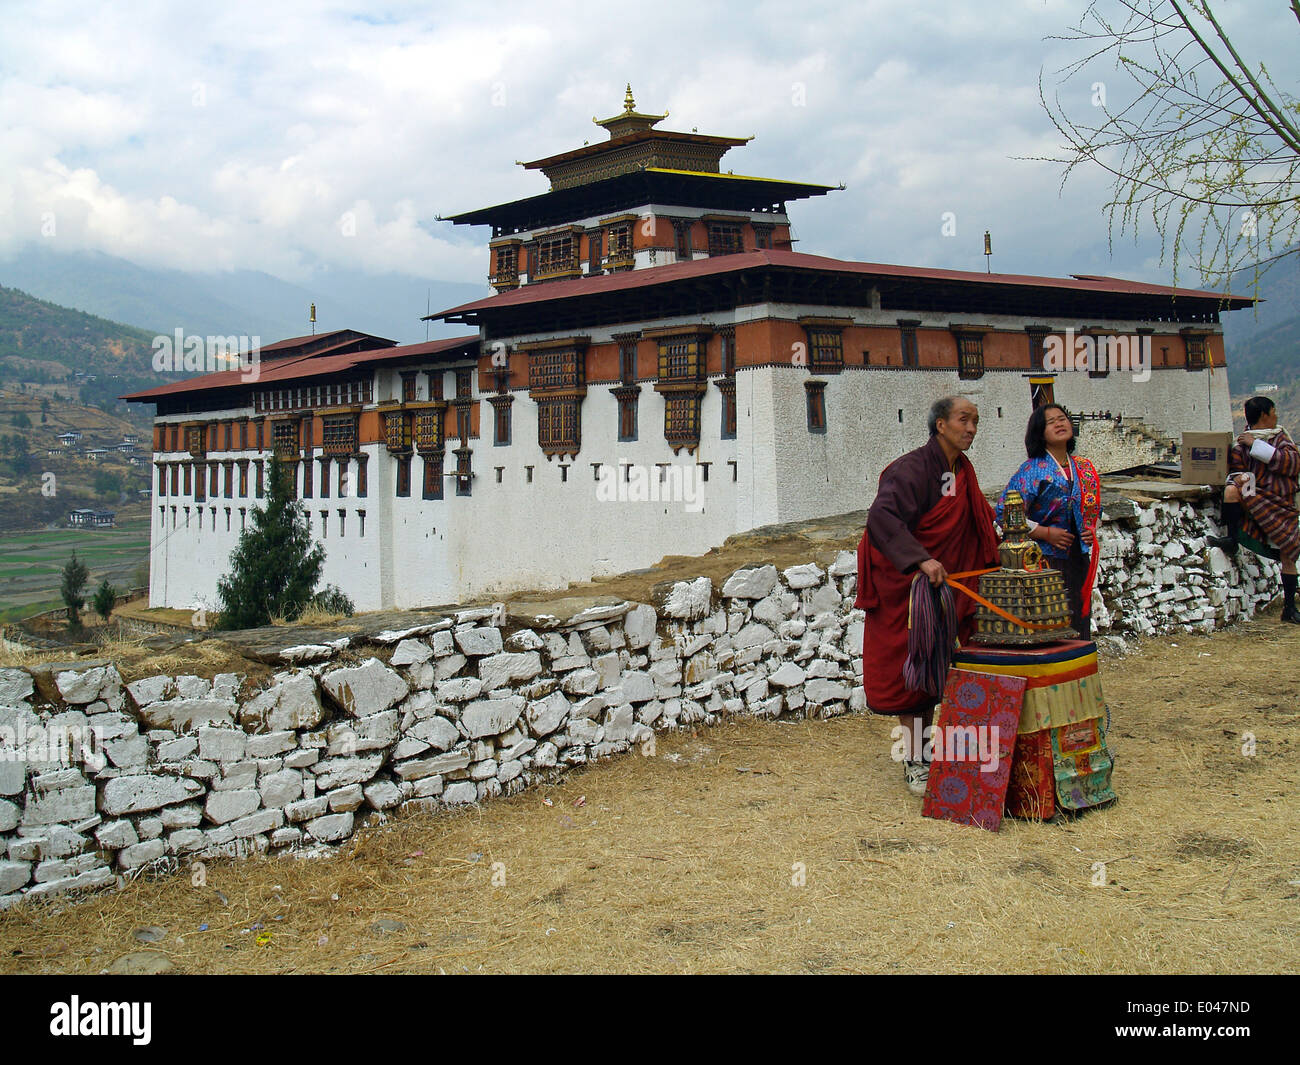 A vendor at the Tsechu Festival in Paro with the Paro Dzong in the background,Bhutan - Stock Image